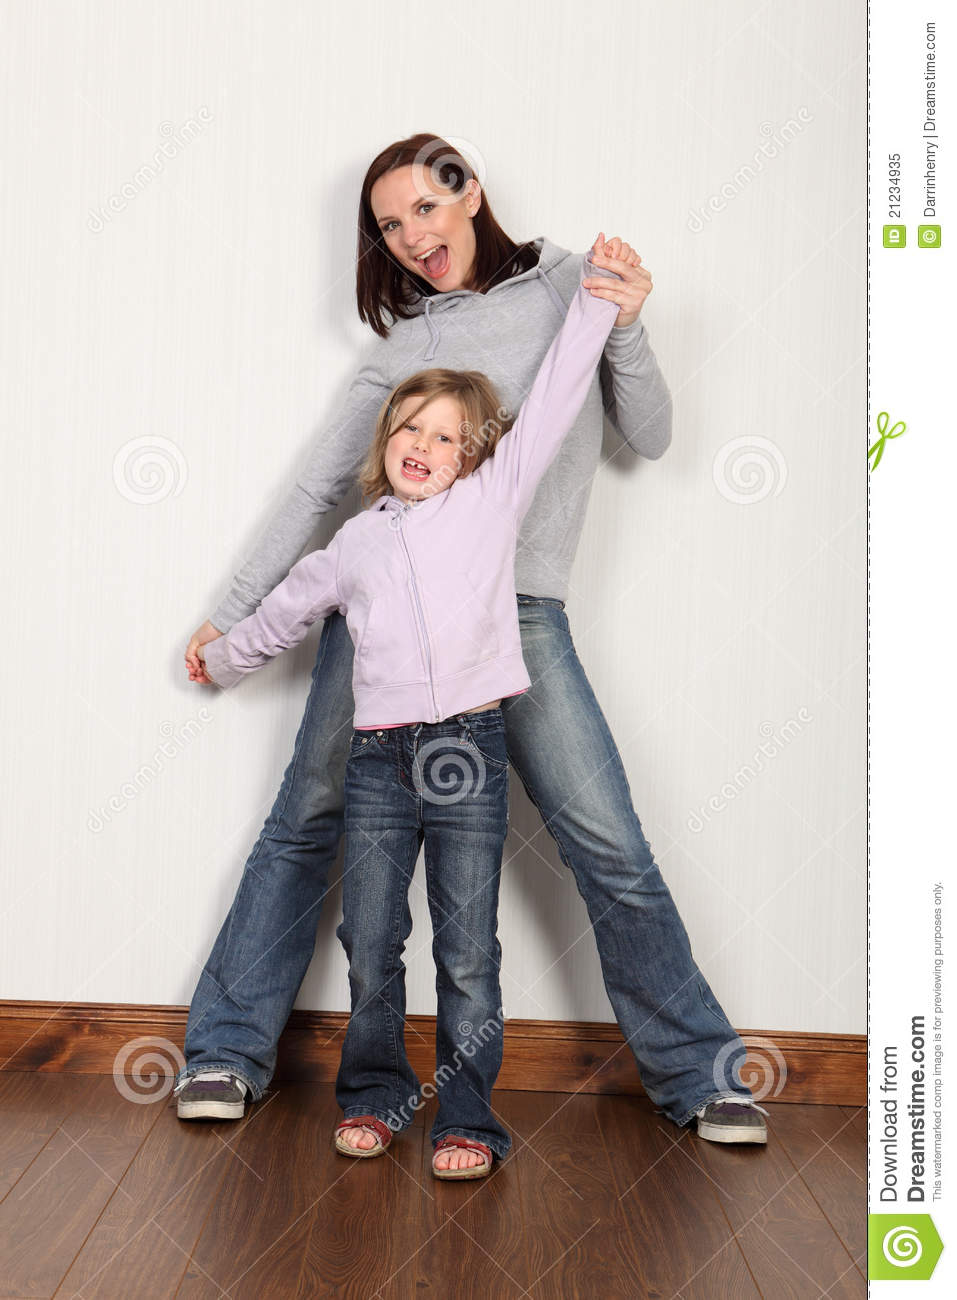 Happy young girl at home celebrating with her mum